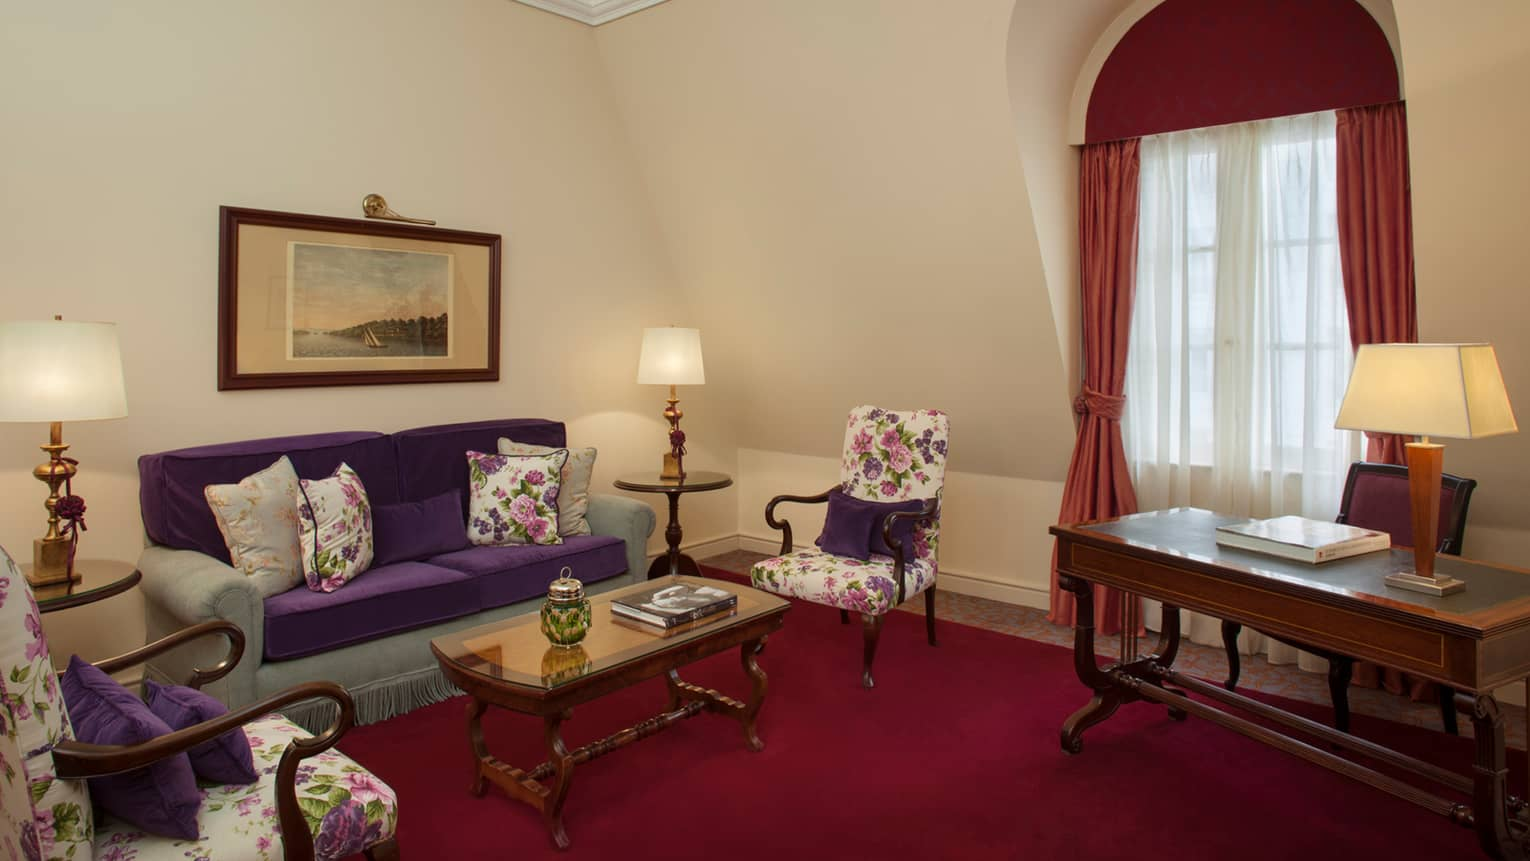 La Mansión Diplomatic Executive Suite deep red carpet, blue-and-purple sofa, floral armchairs